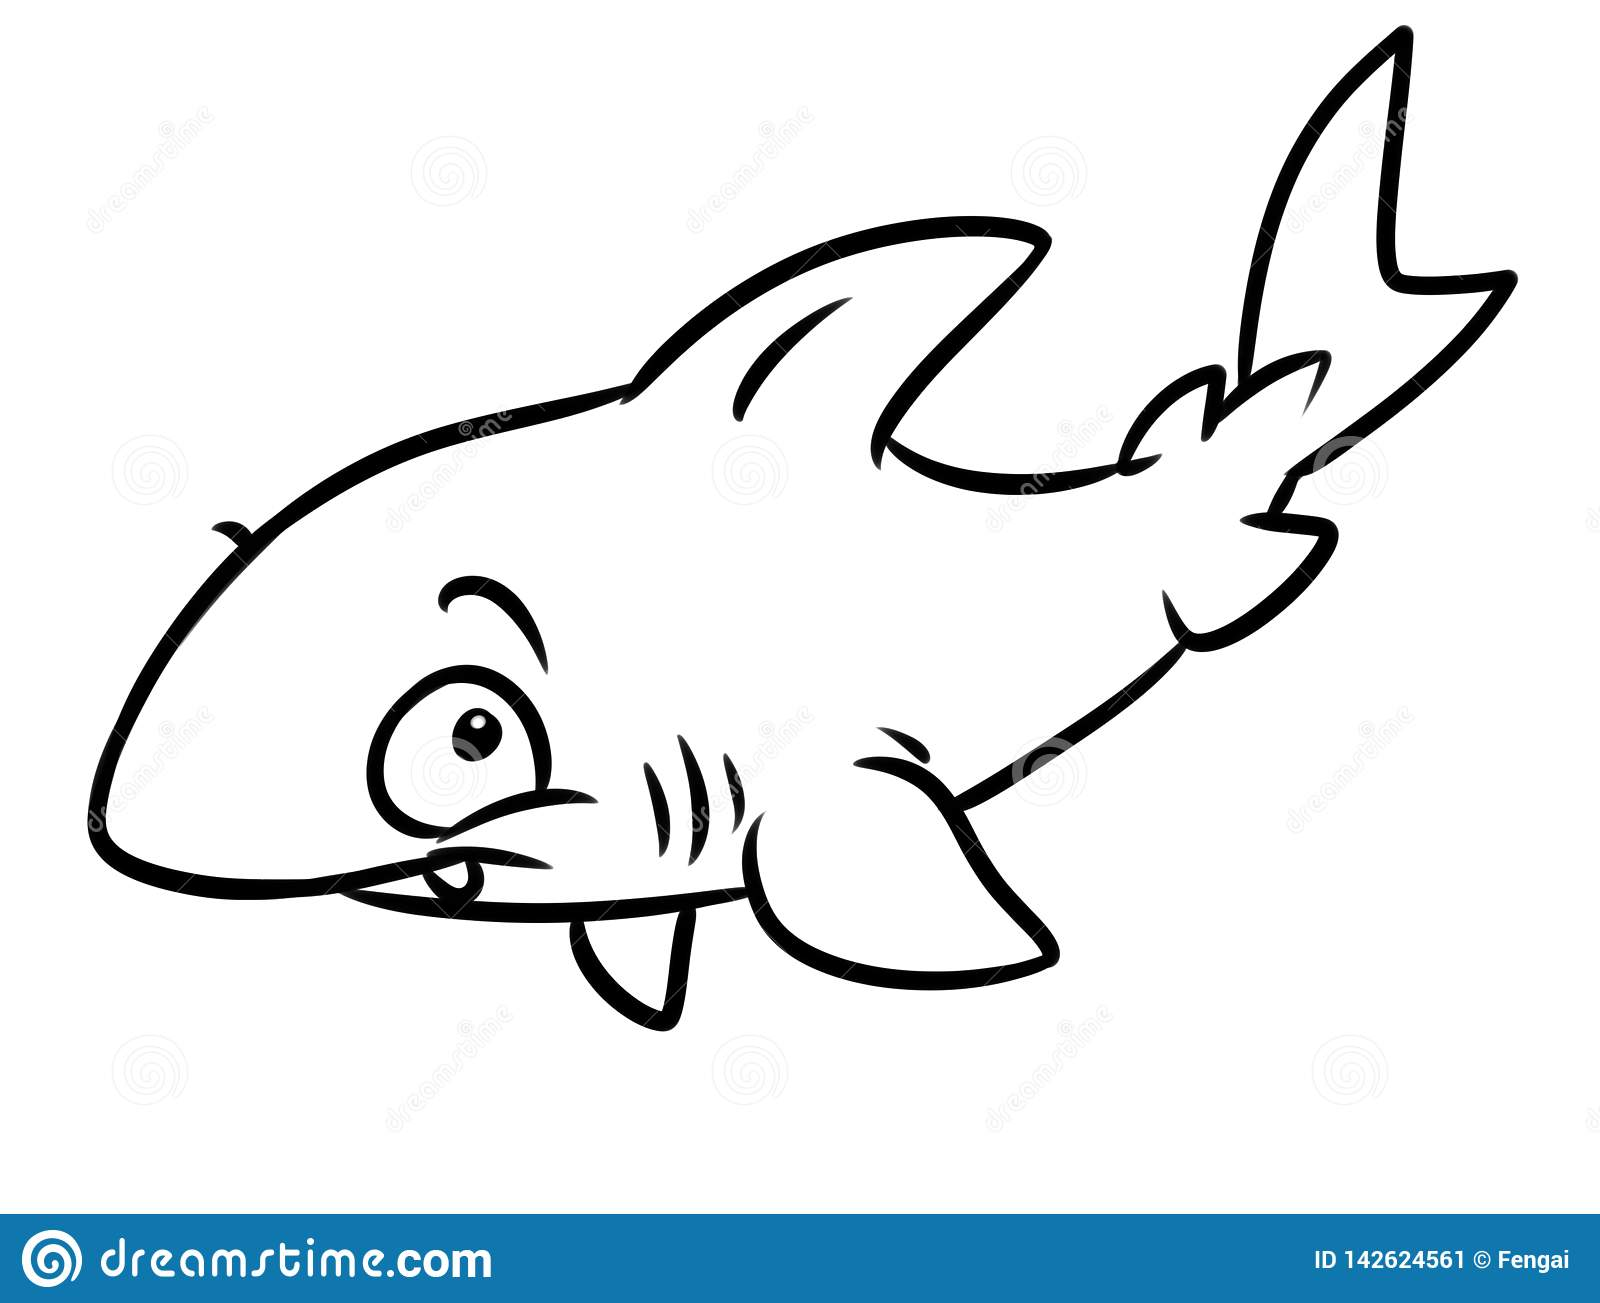 Free Printable Shark Coloring Pages For Kids | Shark coloring ... | 1303x1600